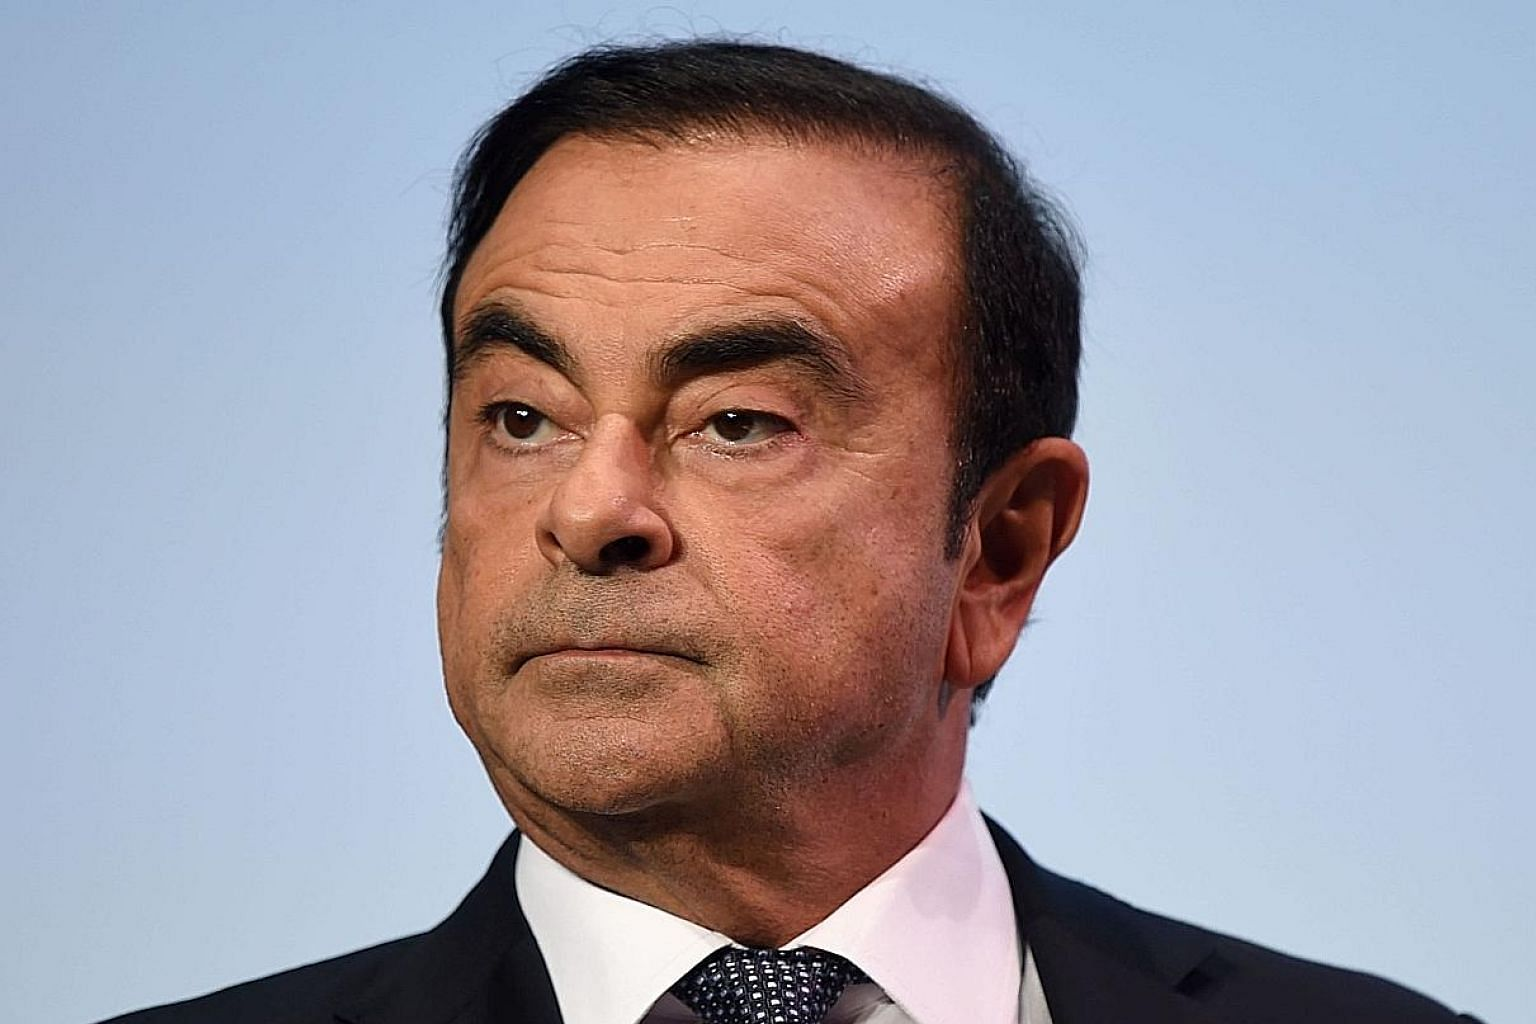 Carlos Ghosn was rearrested yesterday on suspicion of breach of trust.